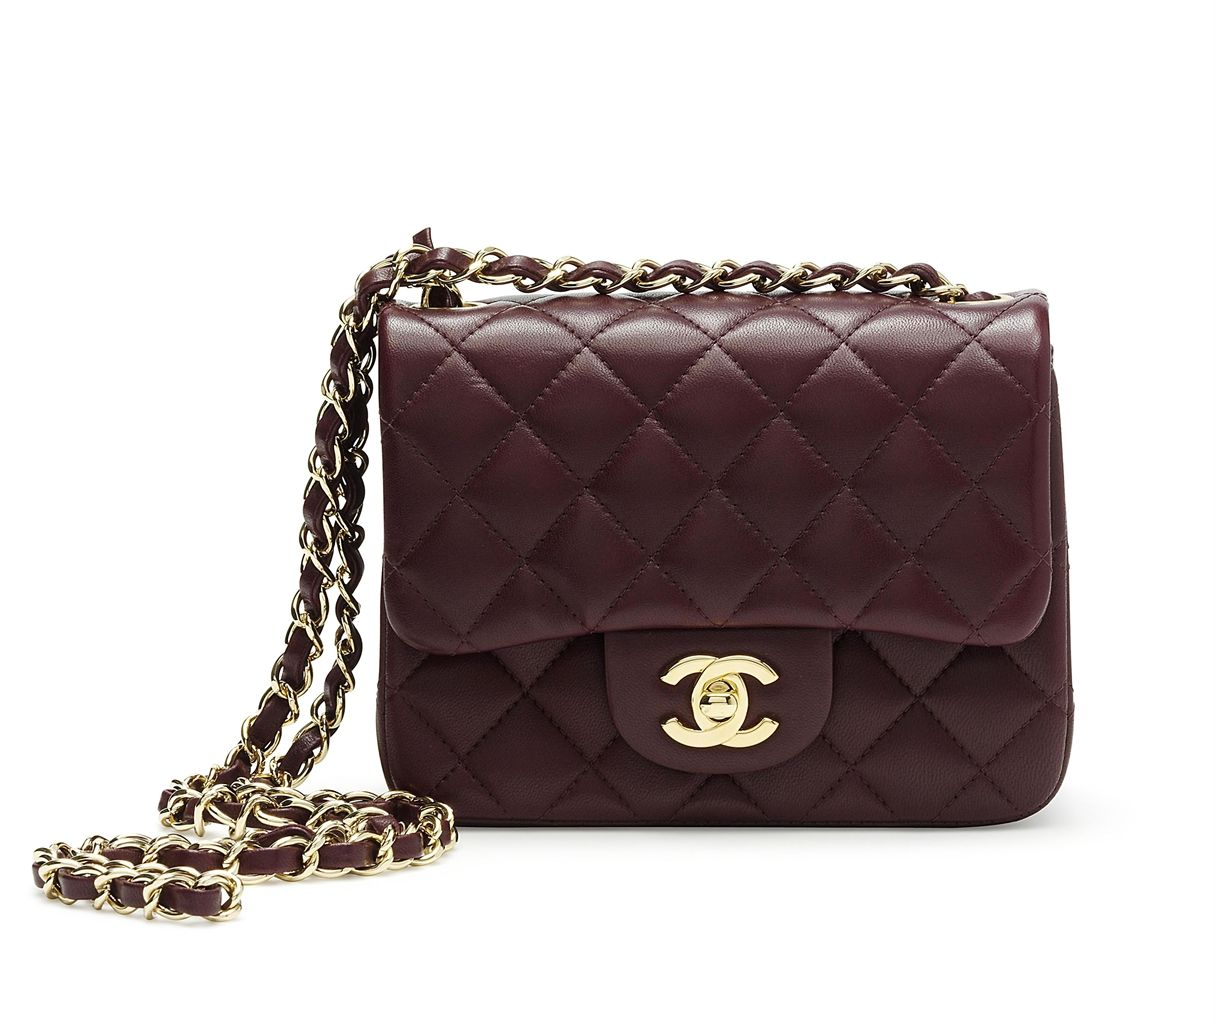 A Burgundy Leather Classic Single Flap Bag Chanel 2017 13